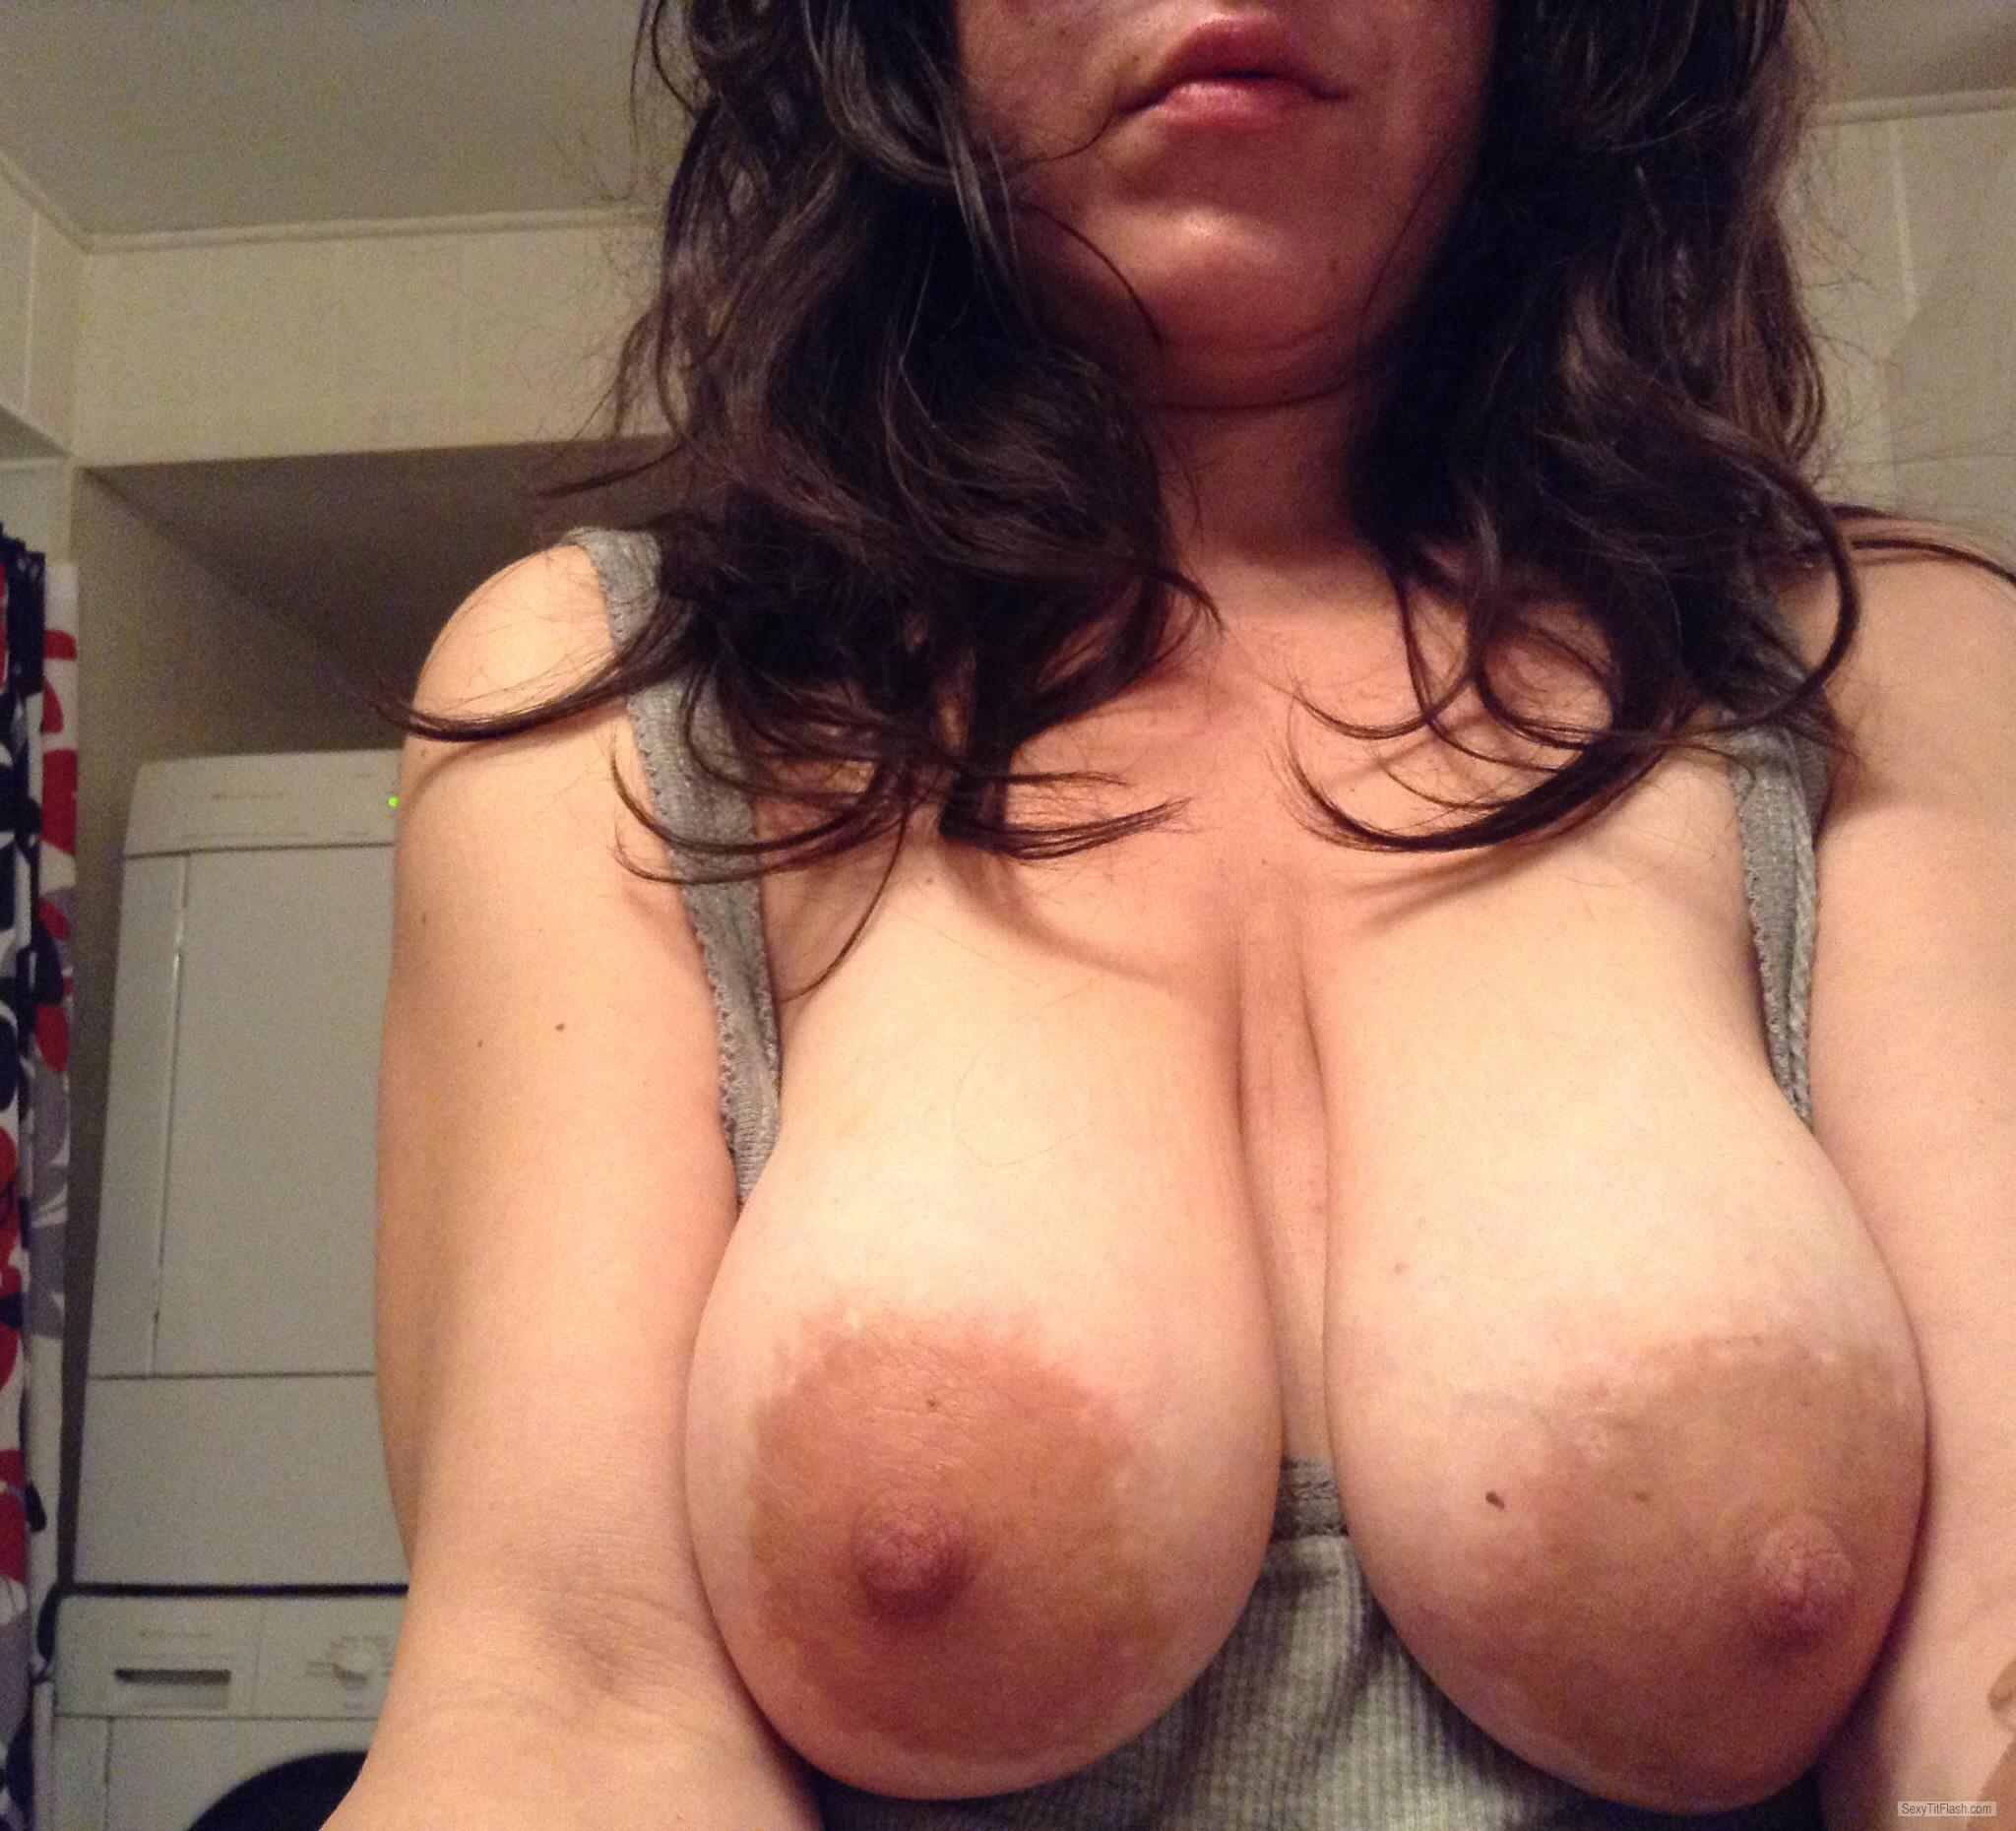 Tit Flash: Wife's Big Tits (Selfie) - Tittymom from United States